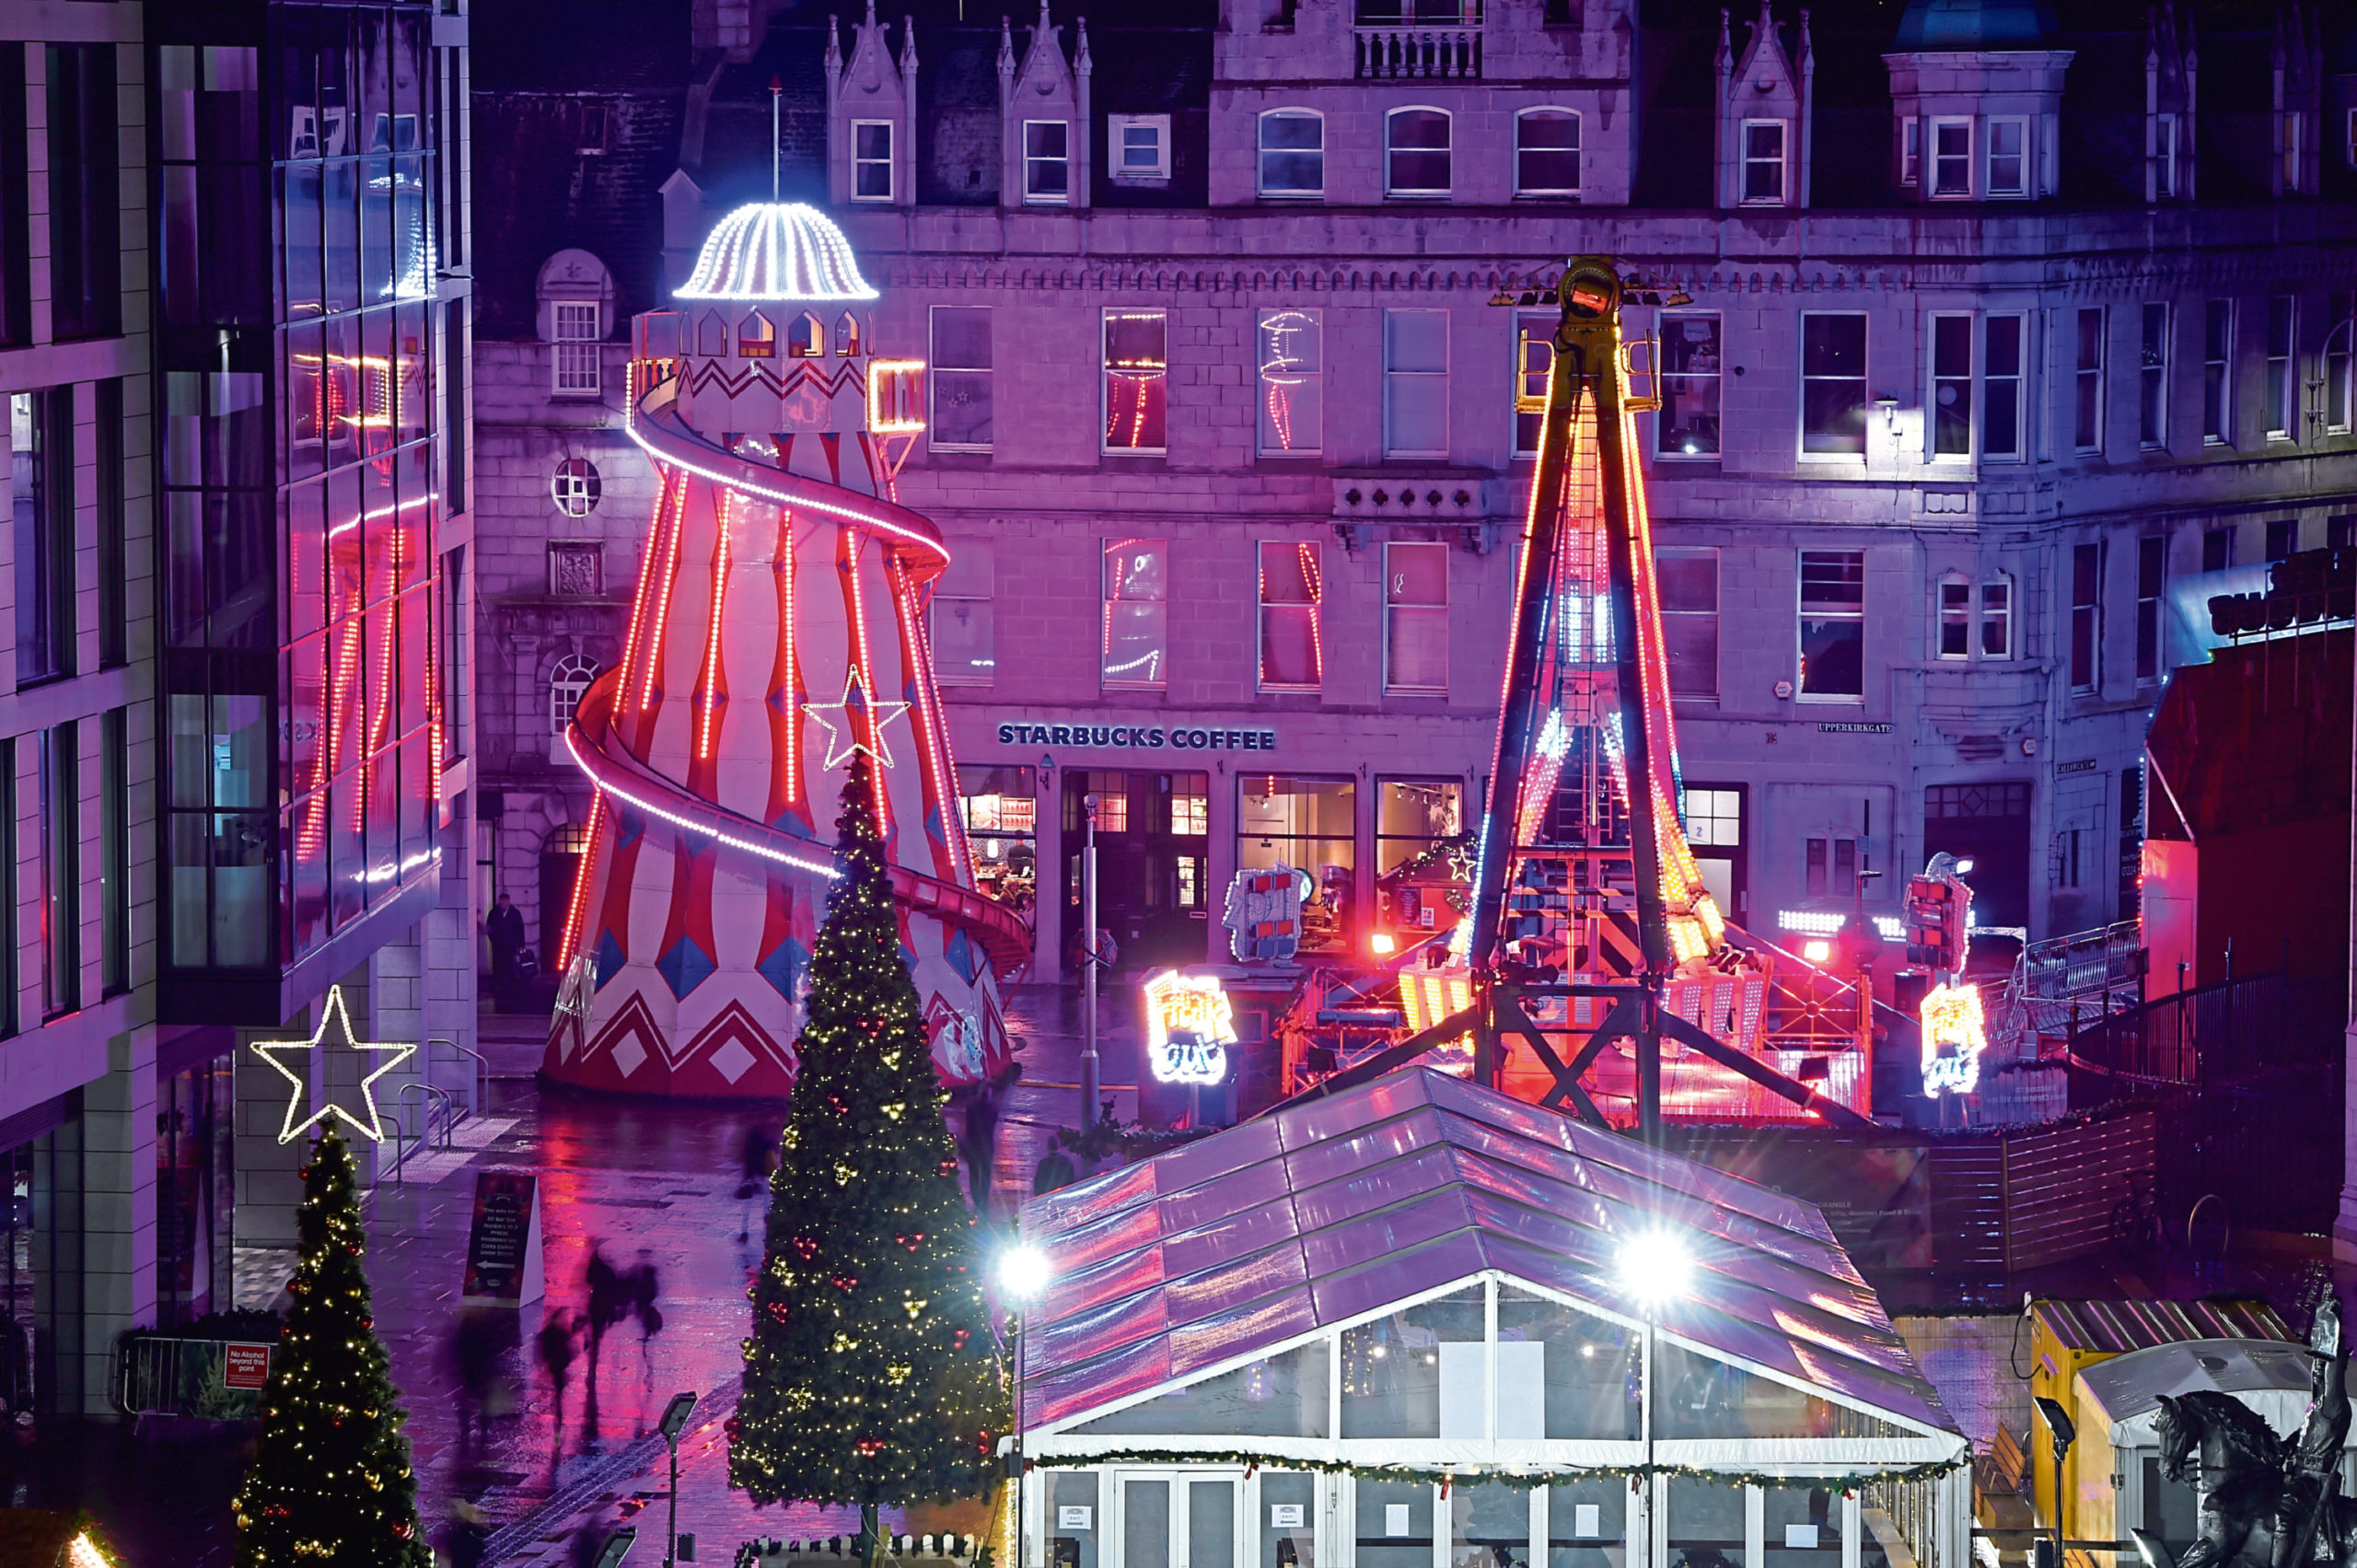 Aberdeen will host a Christmas light display this year.